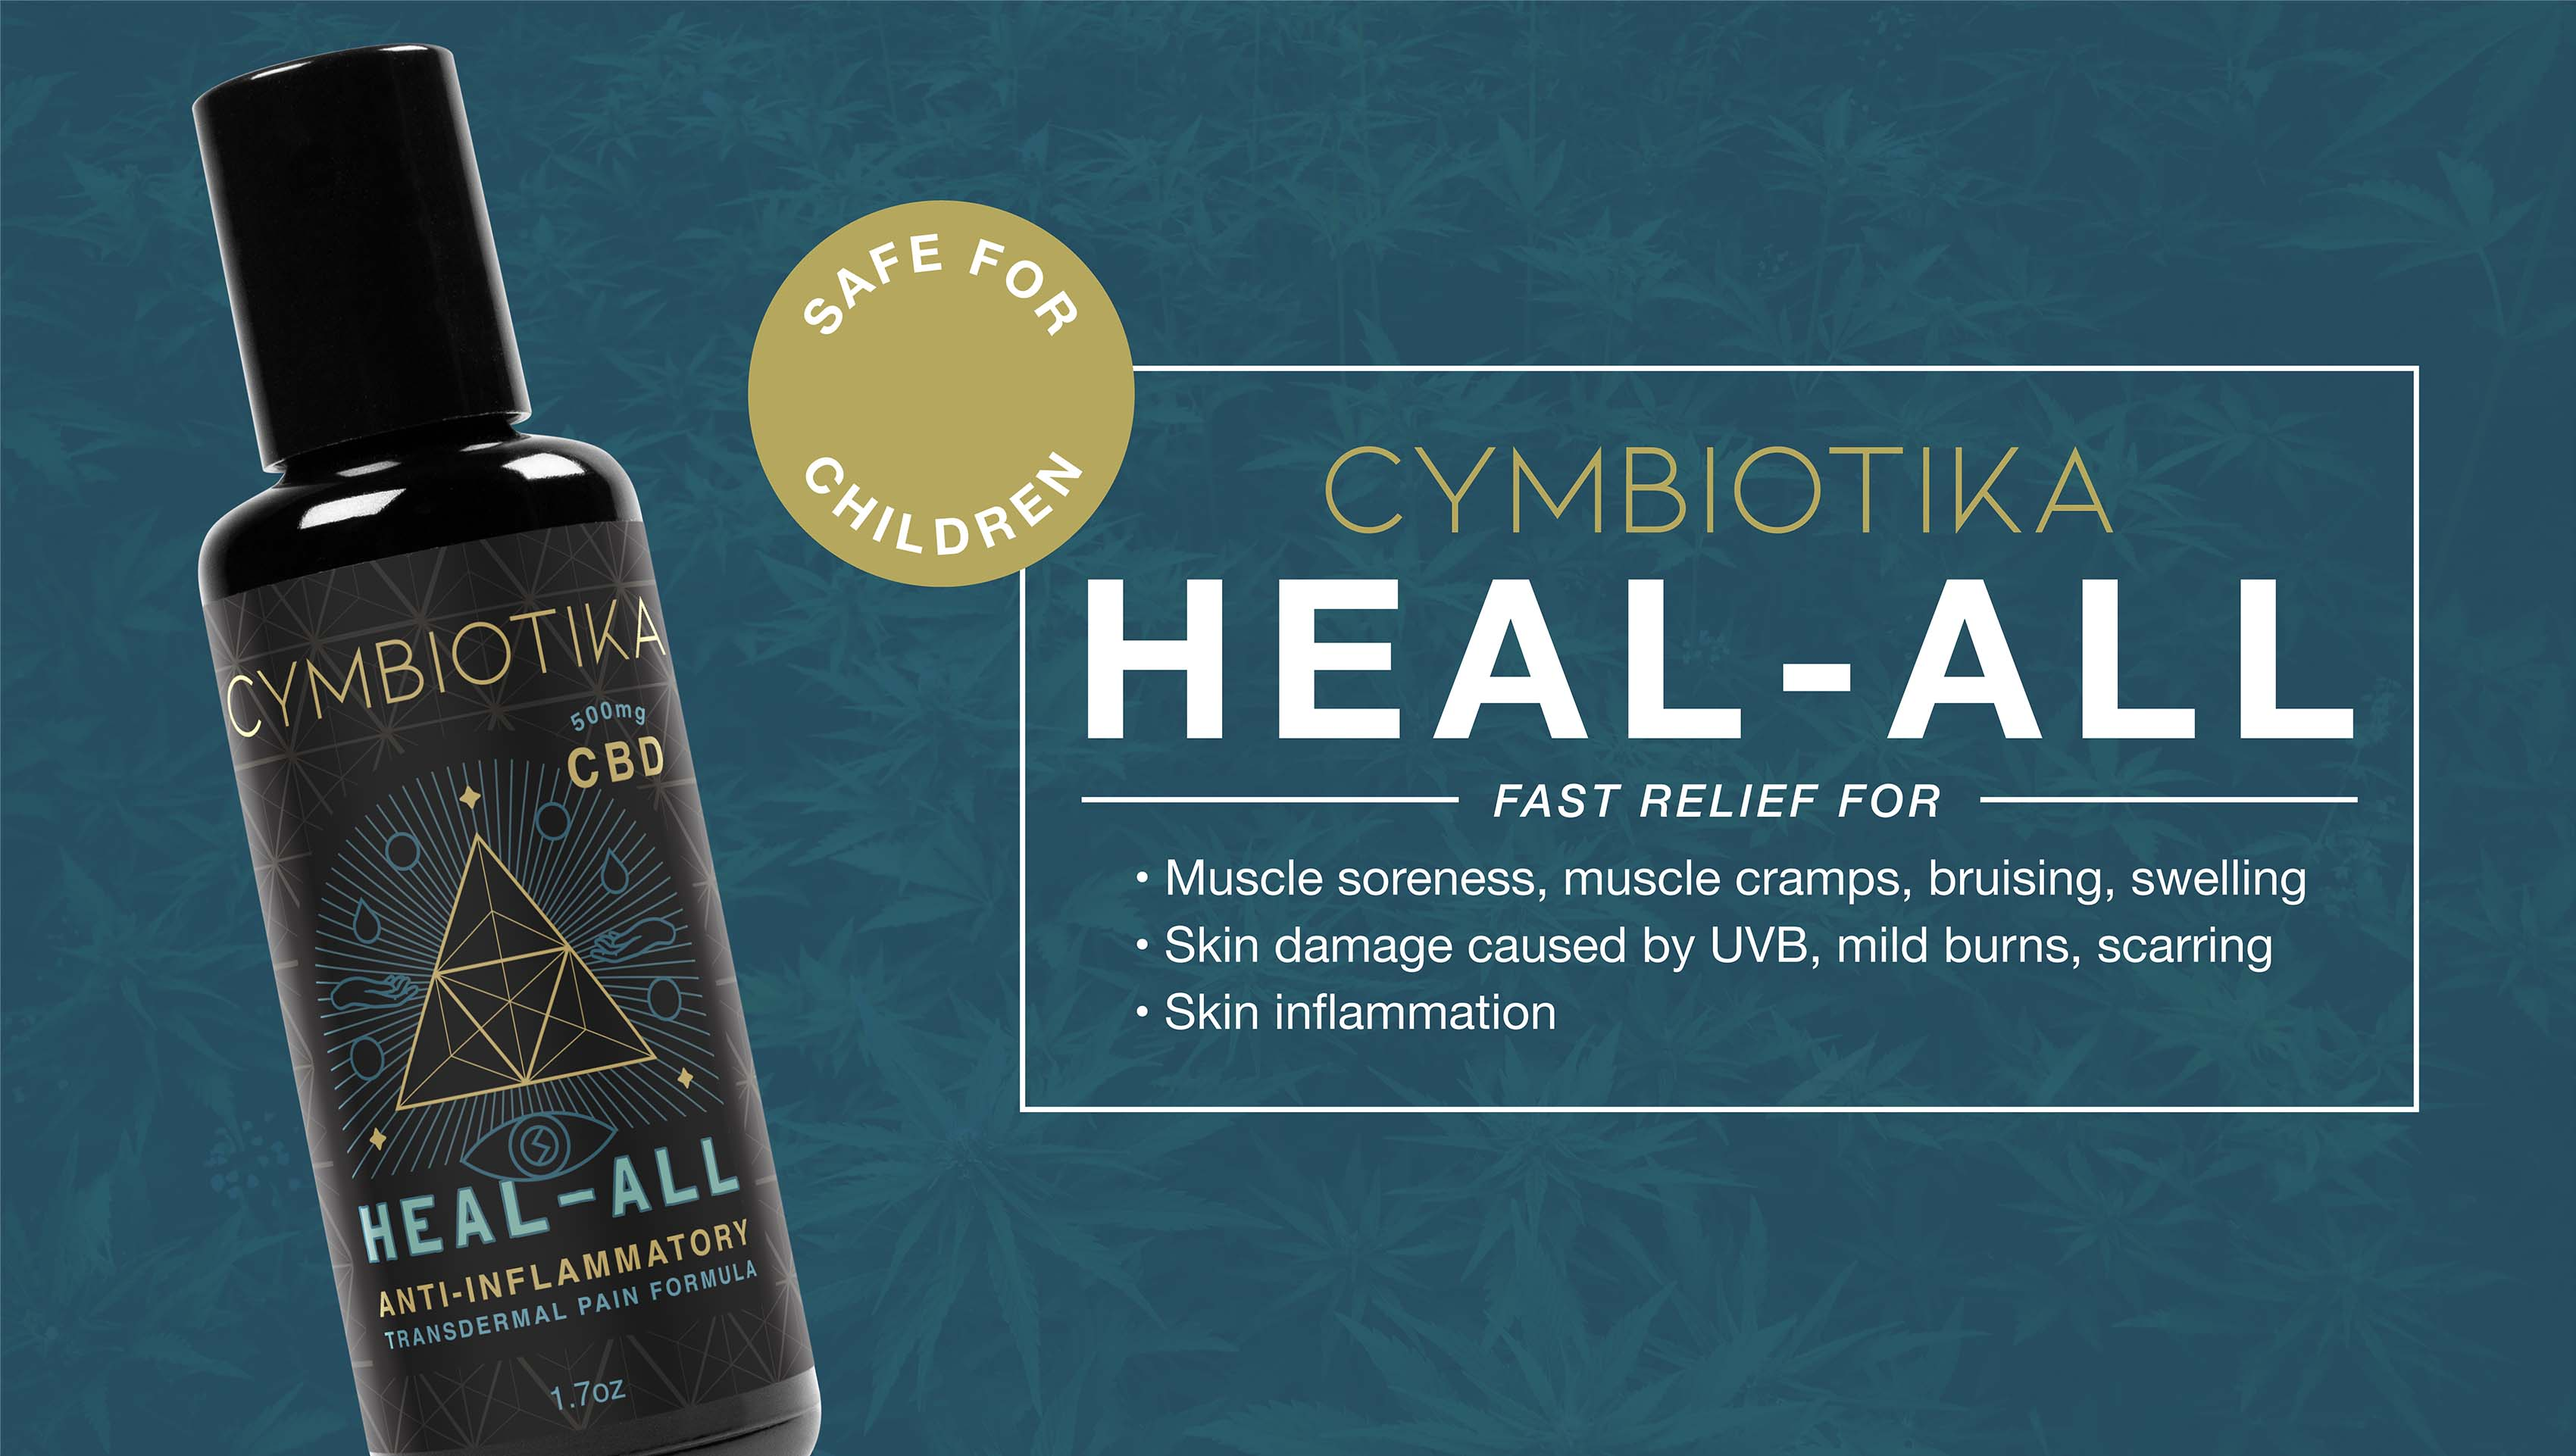 Fast relief for muscle soreness and inflammation, alongside skin damage caused by UVB sun rays and scarring.